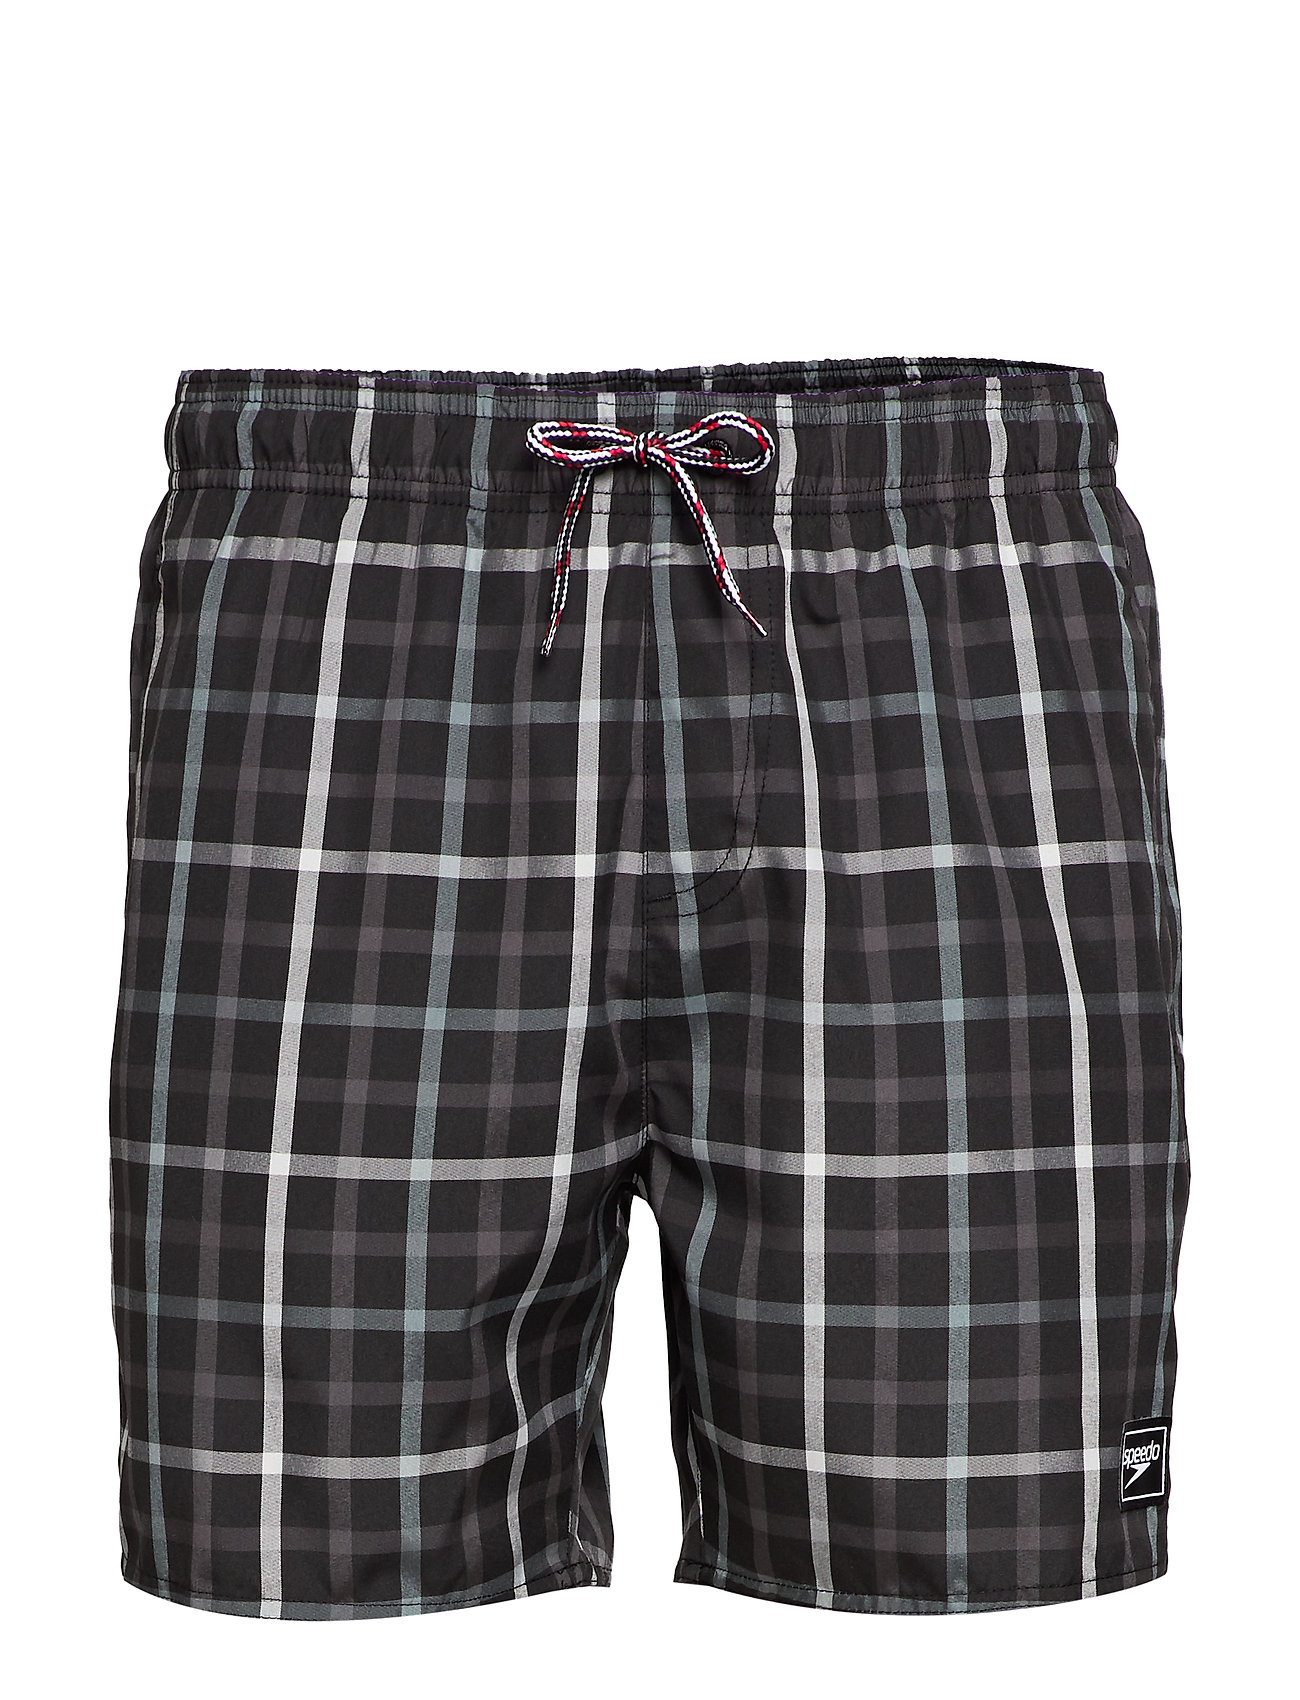 Image of Check Leisure 16'''' Watershort Badeshorts Multi/mønstret Speedo (3224263501)